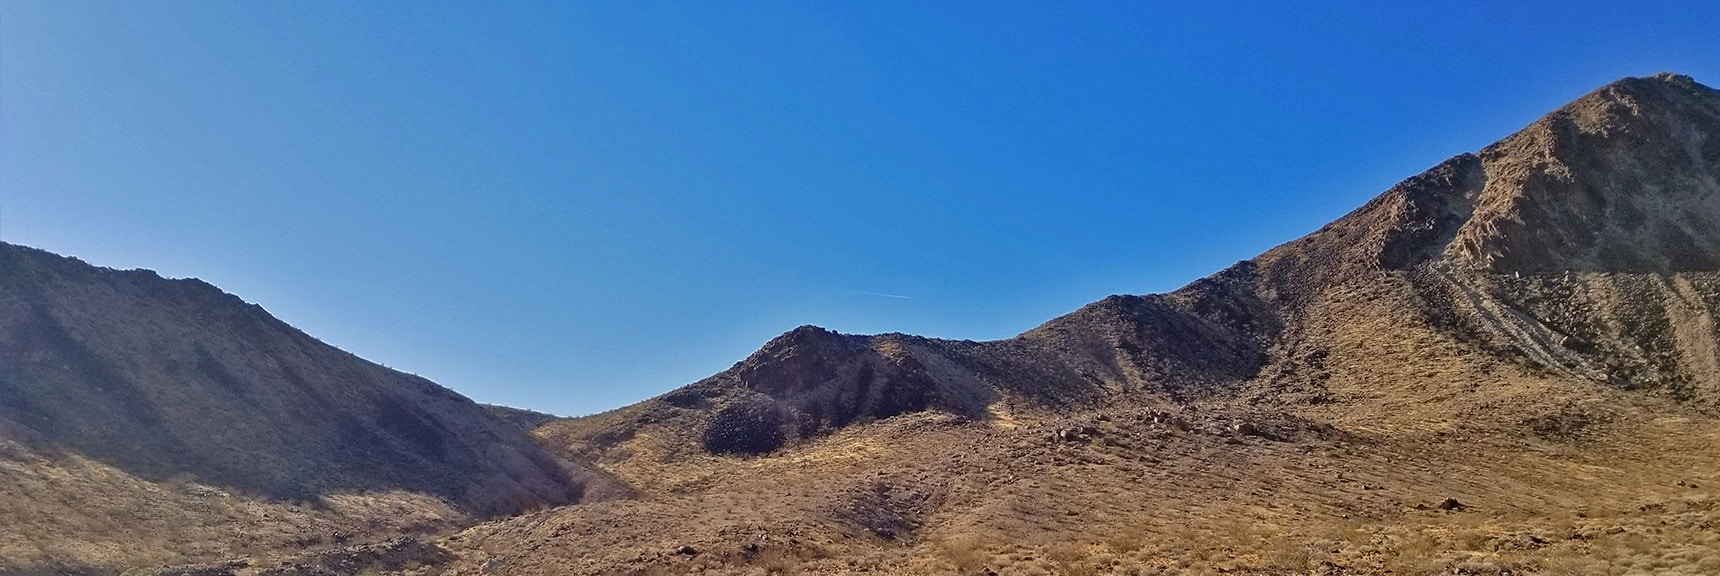 View Bact to Lava Butte and the Saddle Pass to the Northern Summit Approach Route. | Lava Butte | Lake Mead National Recreation Area, Nevada